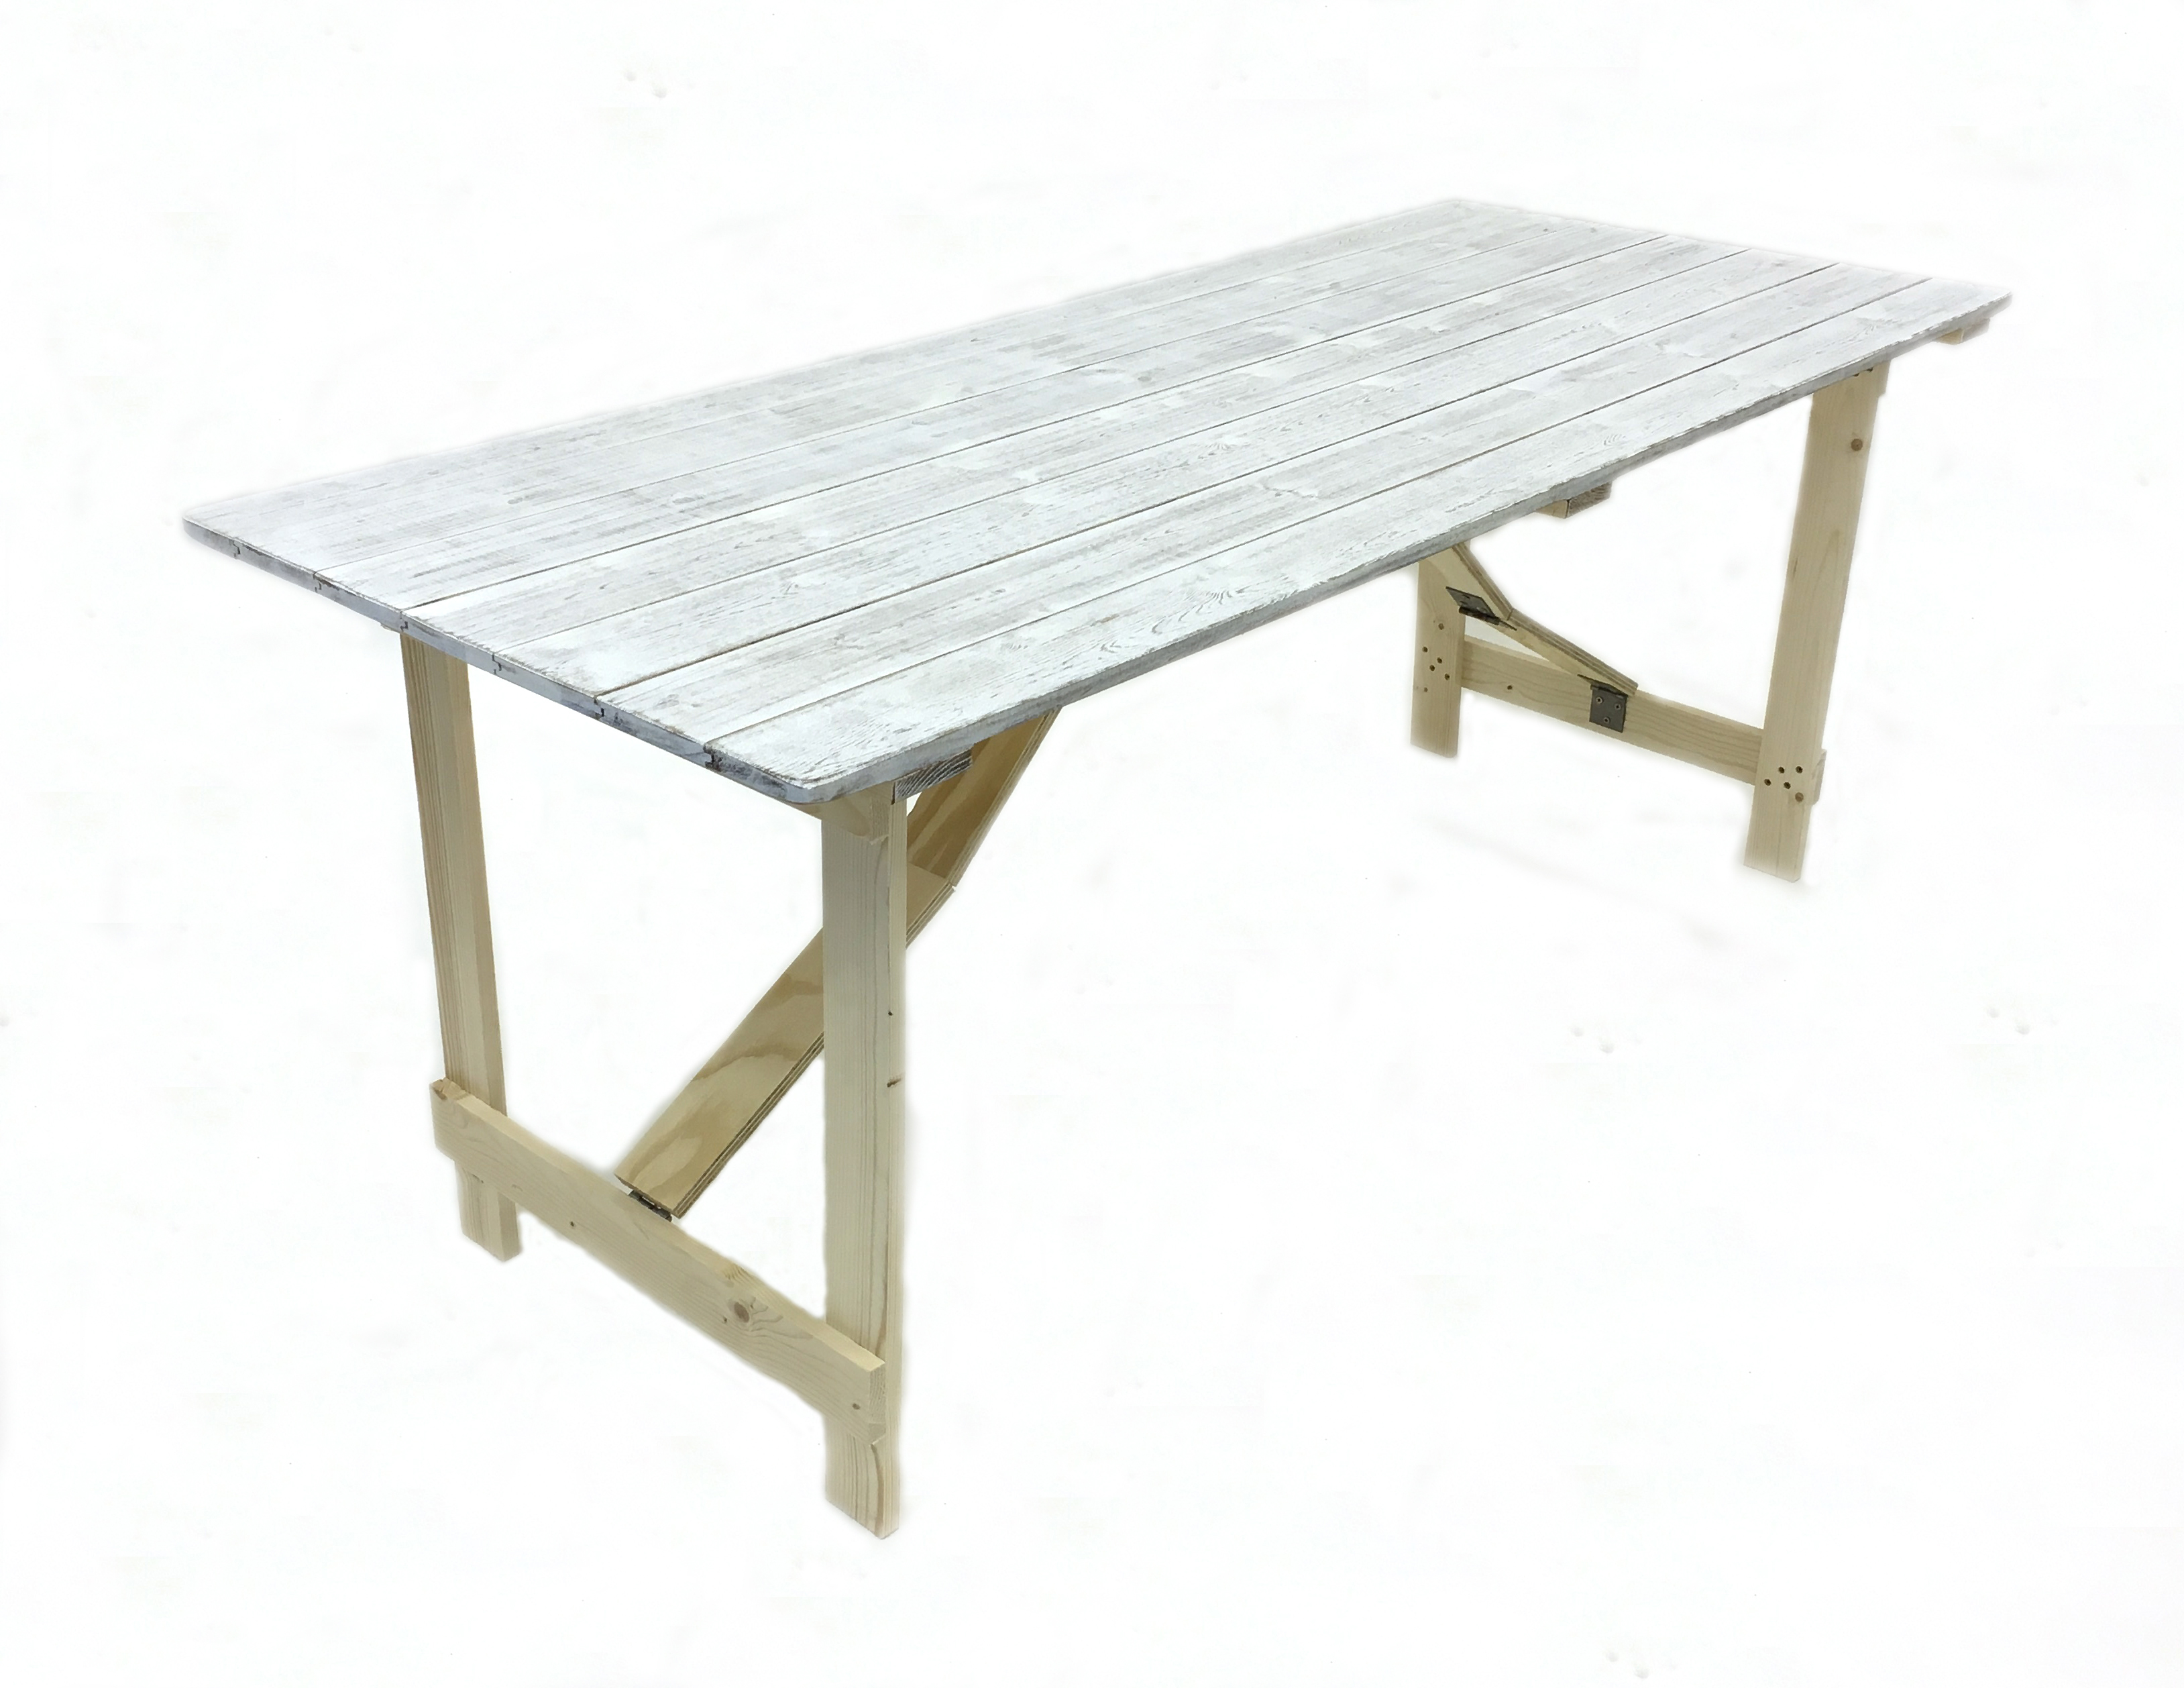 Distressed Wooden Trestle Table Sale - BE Furniture Sales